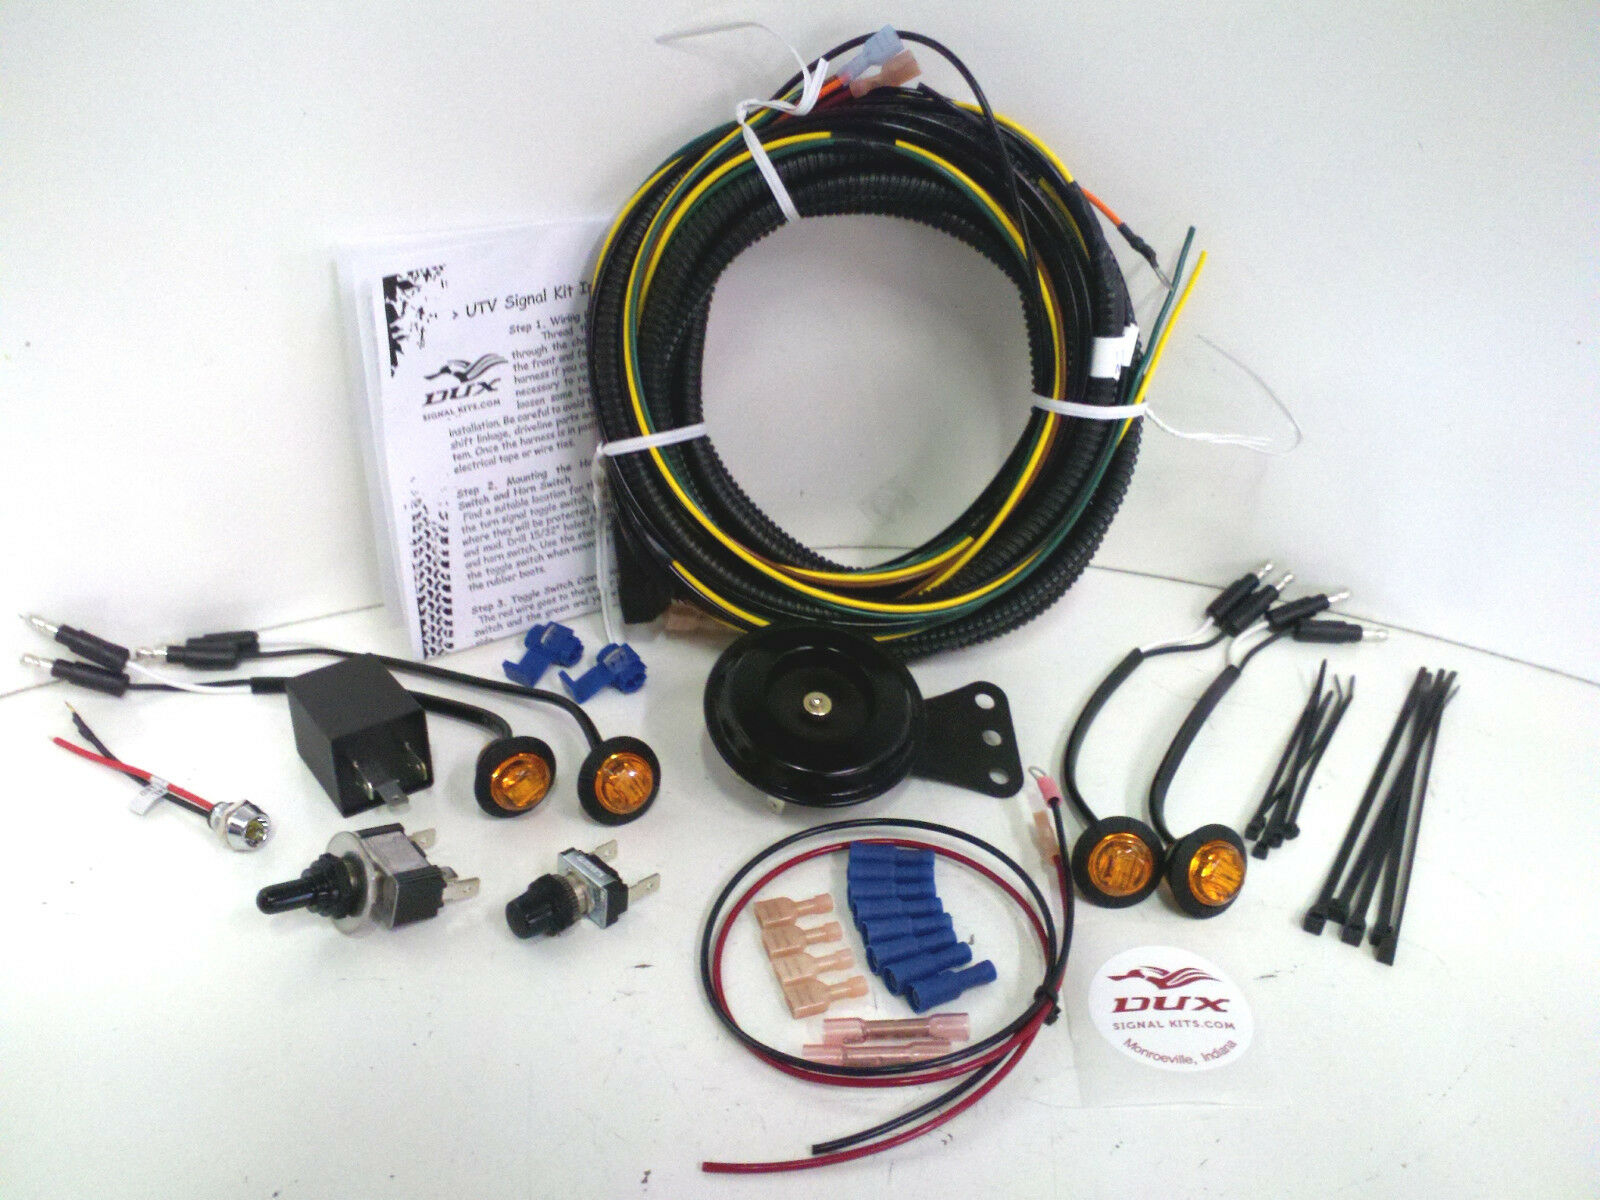 John Deere Gator 4x4 Horn Wiring Harness Electrical Diagrams Xuv Turn Signal Kit 625i 550 S4 Dux Street Ignition Diagram